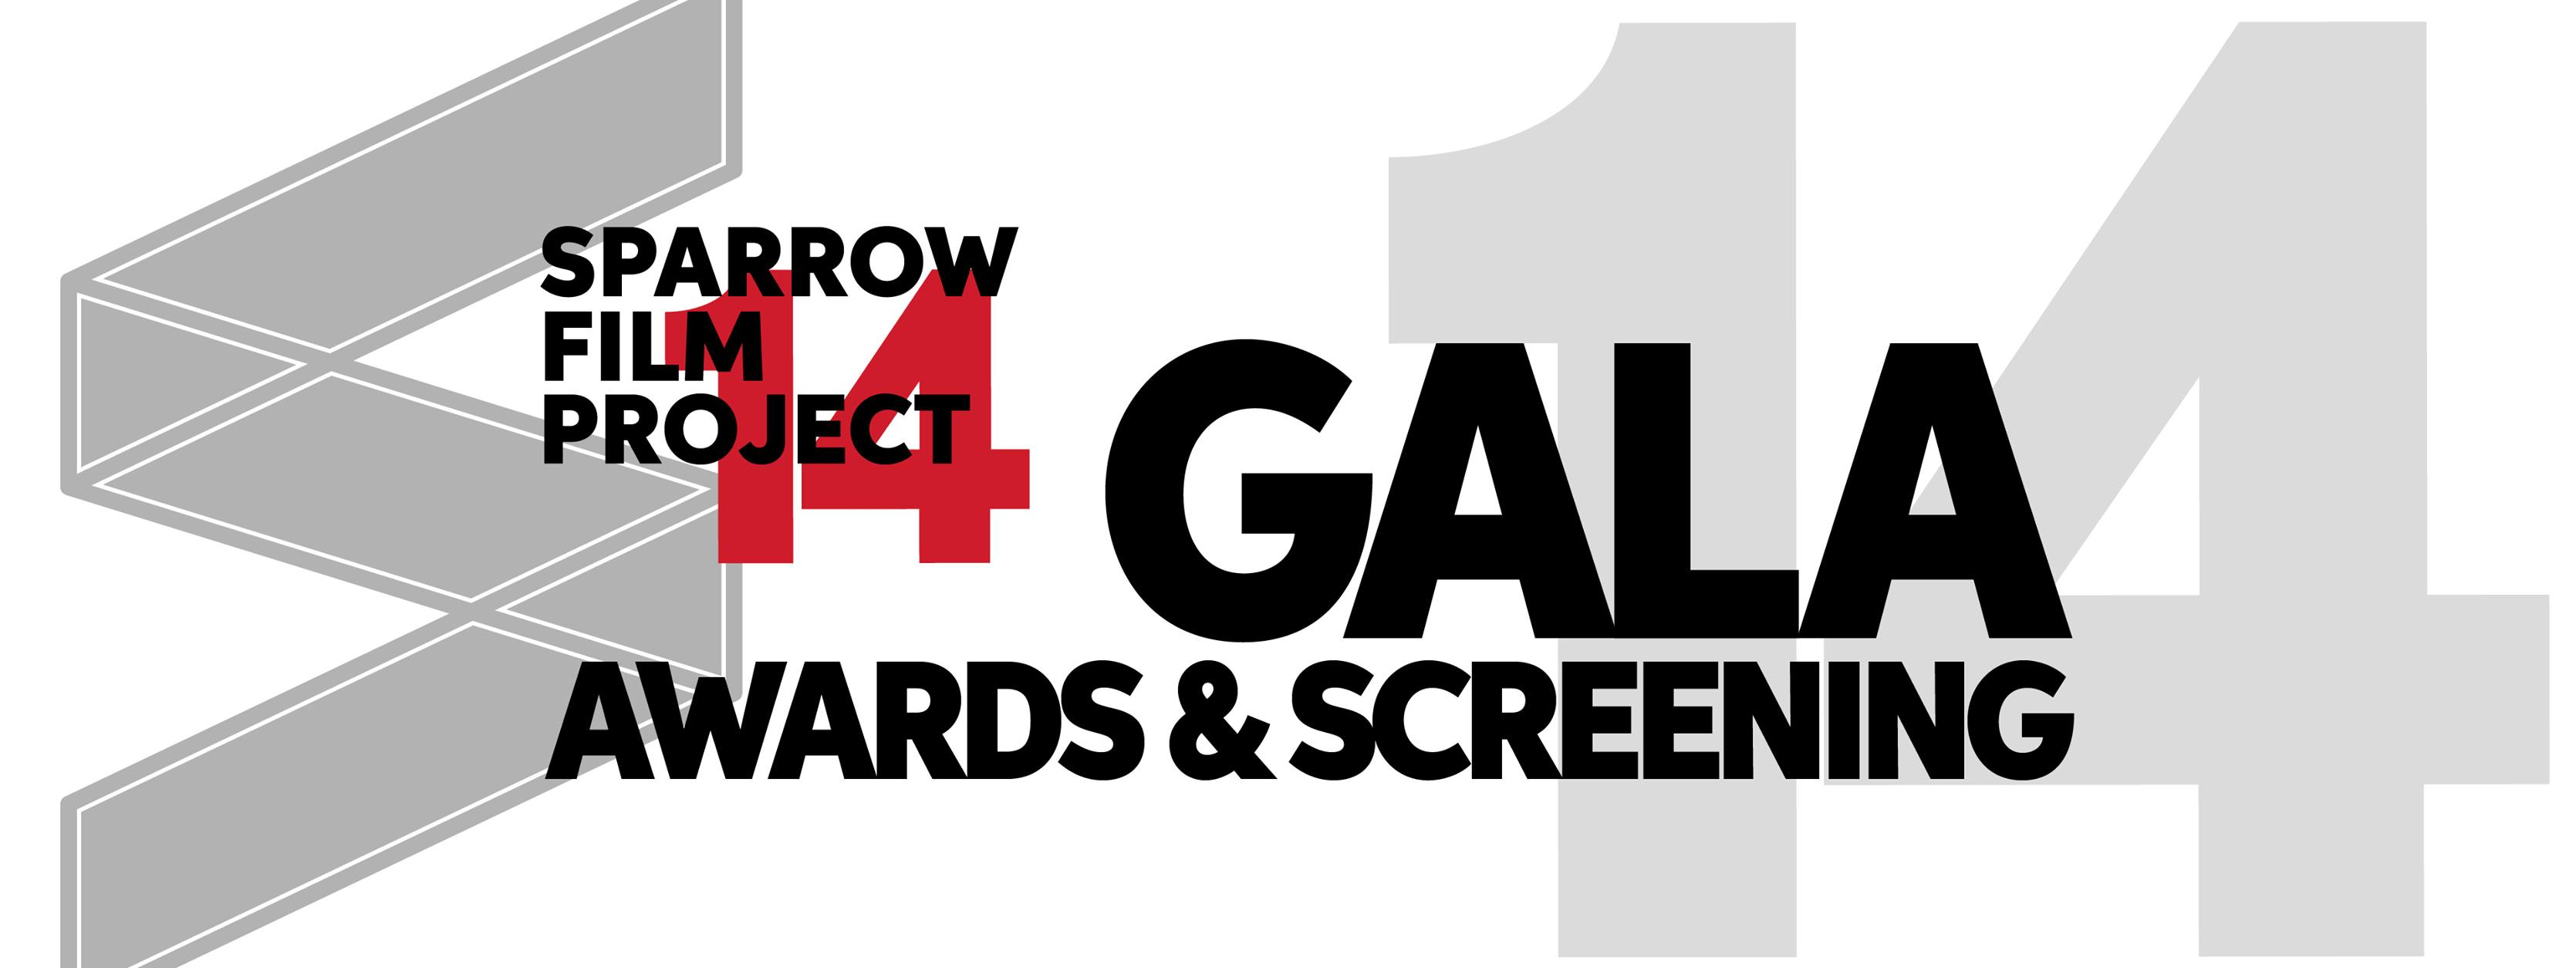 sparrow-film-project-14-gala